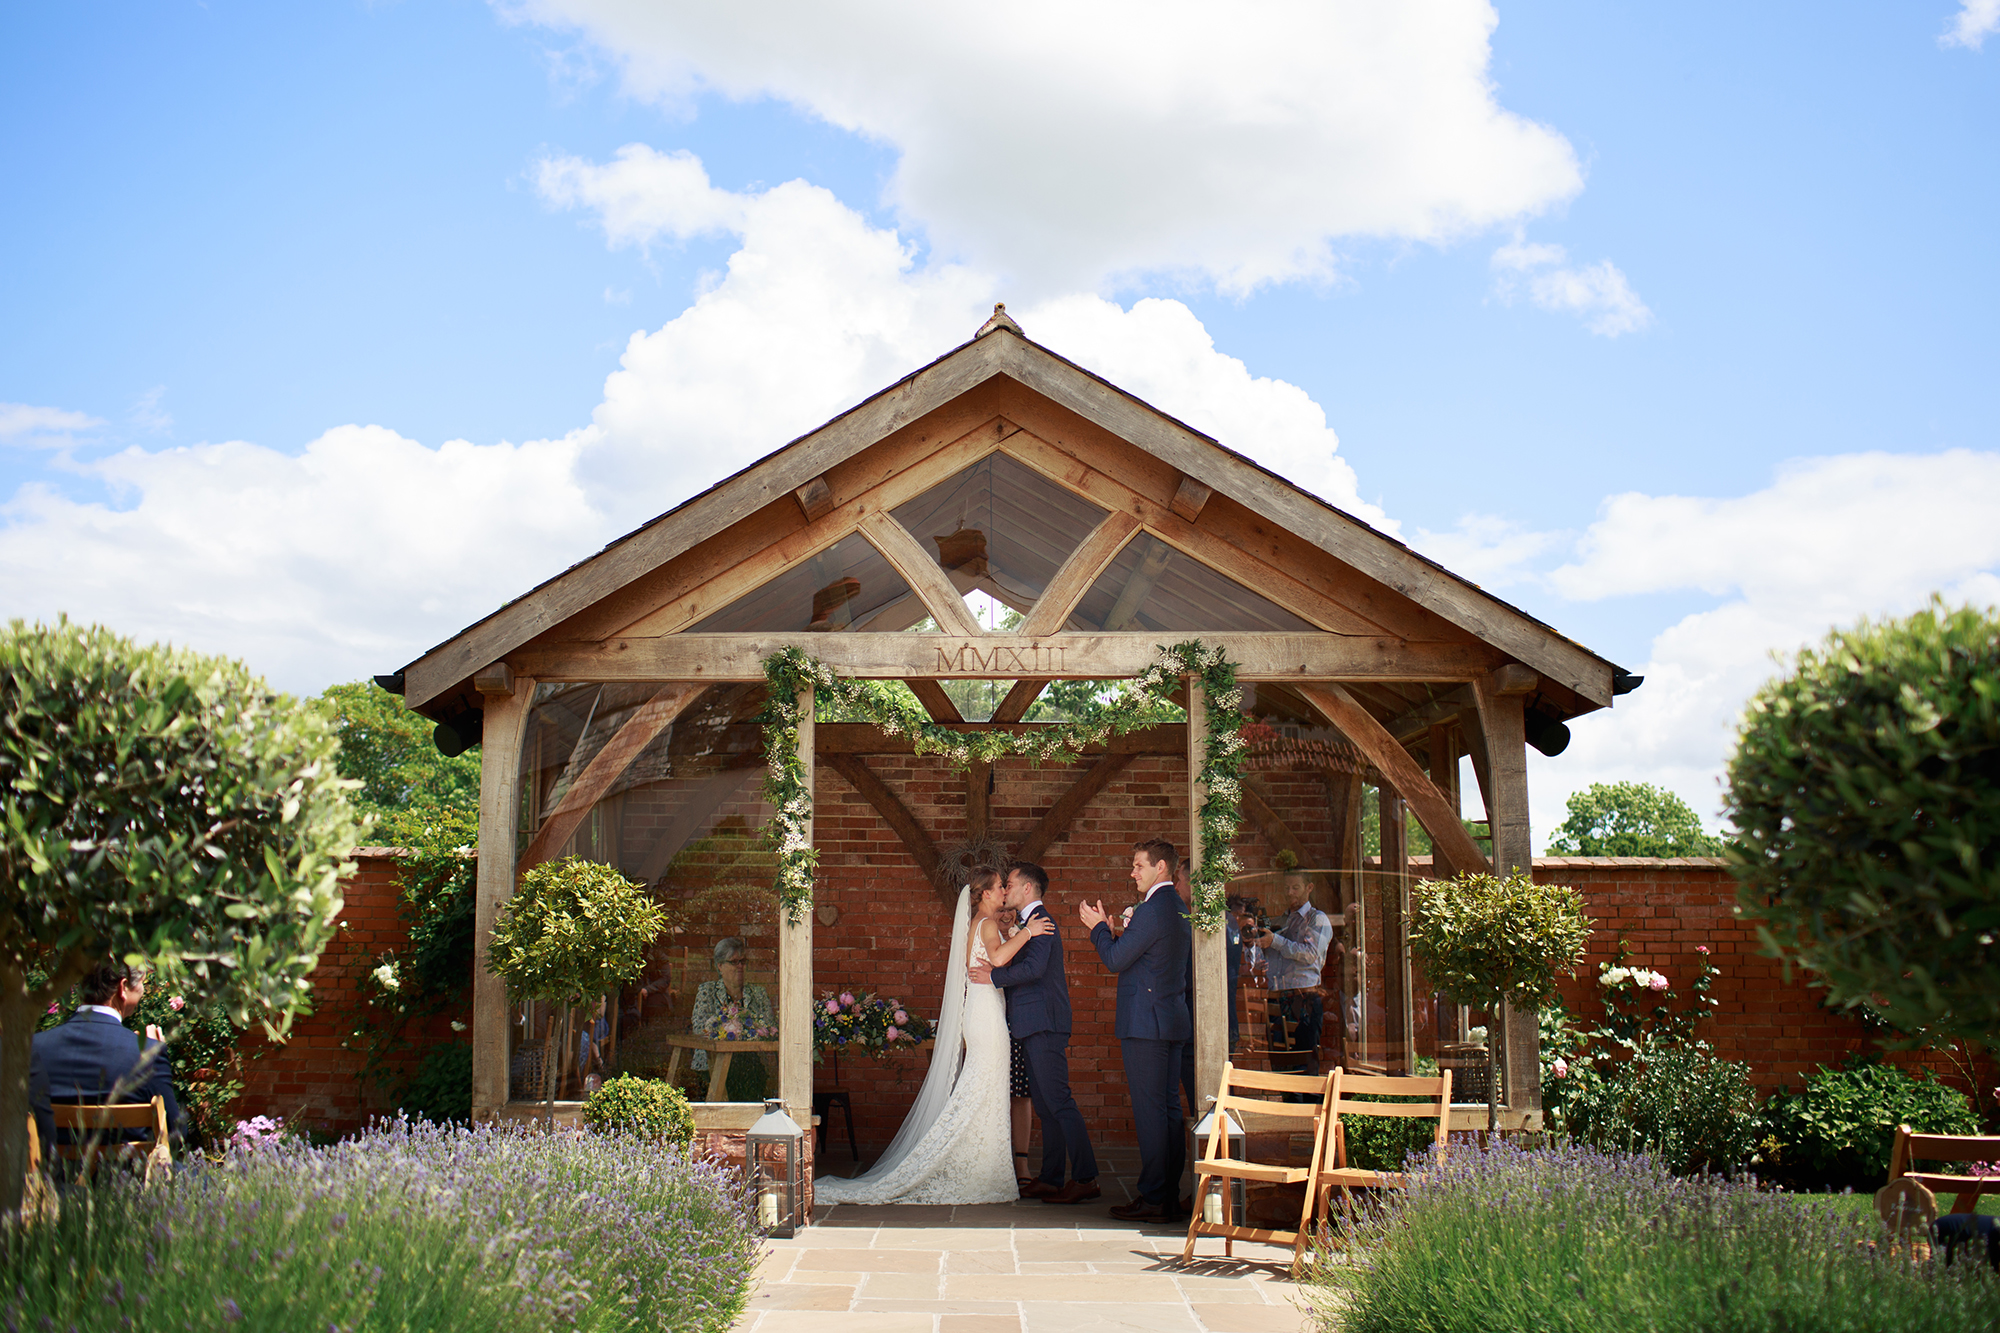 Bride and Grooms first married kiss in the Arbour